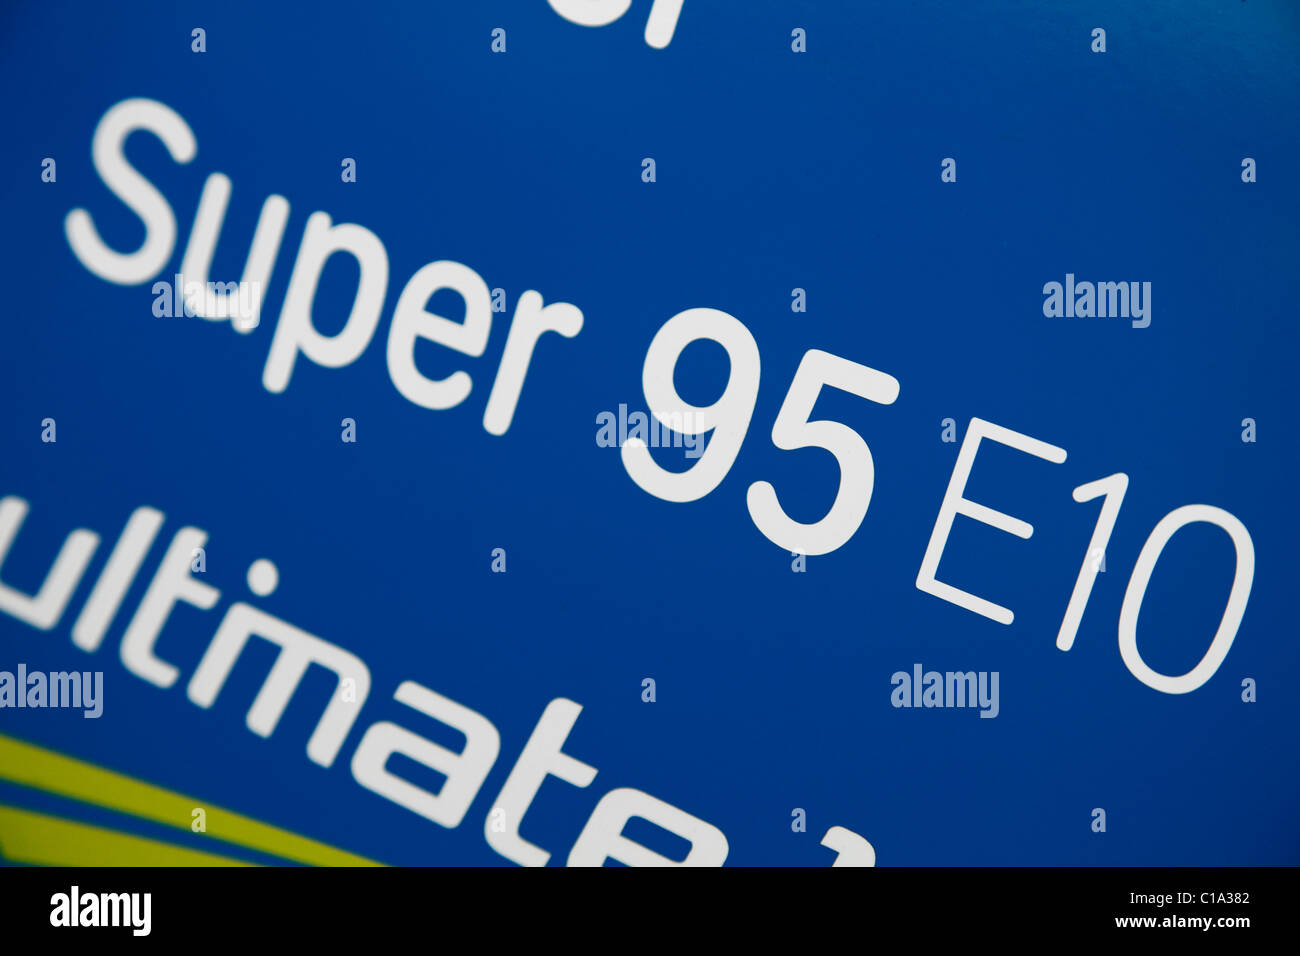 Super E10 a petrol (95 octan) with 10 % bioethanol; Super E10 was launched in March 2011 in Germany Stock Photo